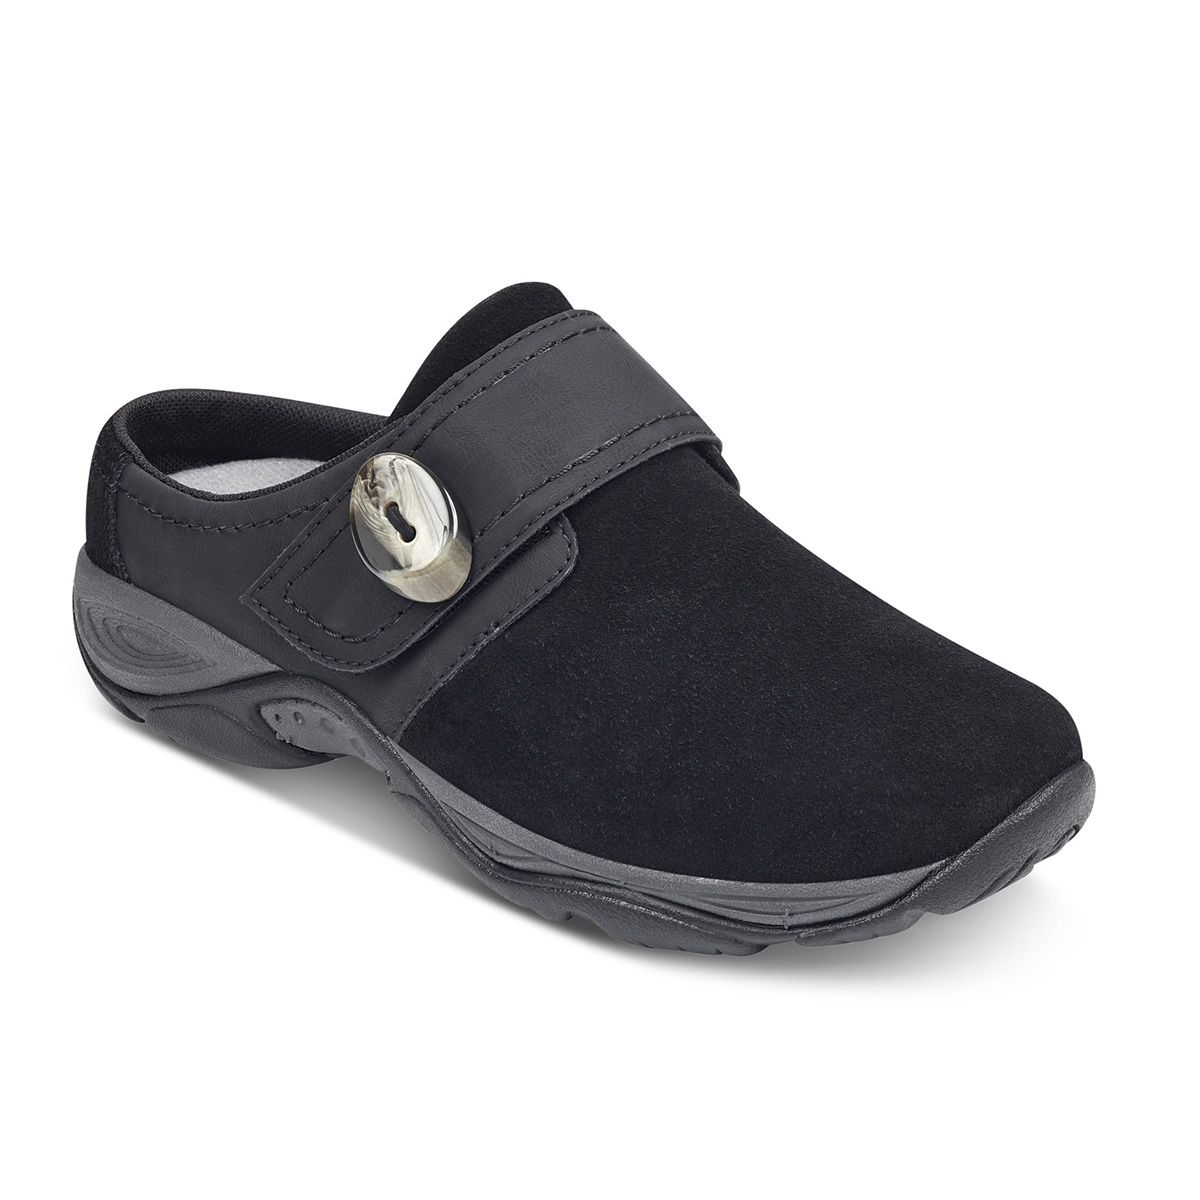 new style e3599 a5c38 Easy Spirit Shoes - Macy s